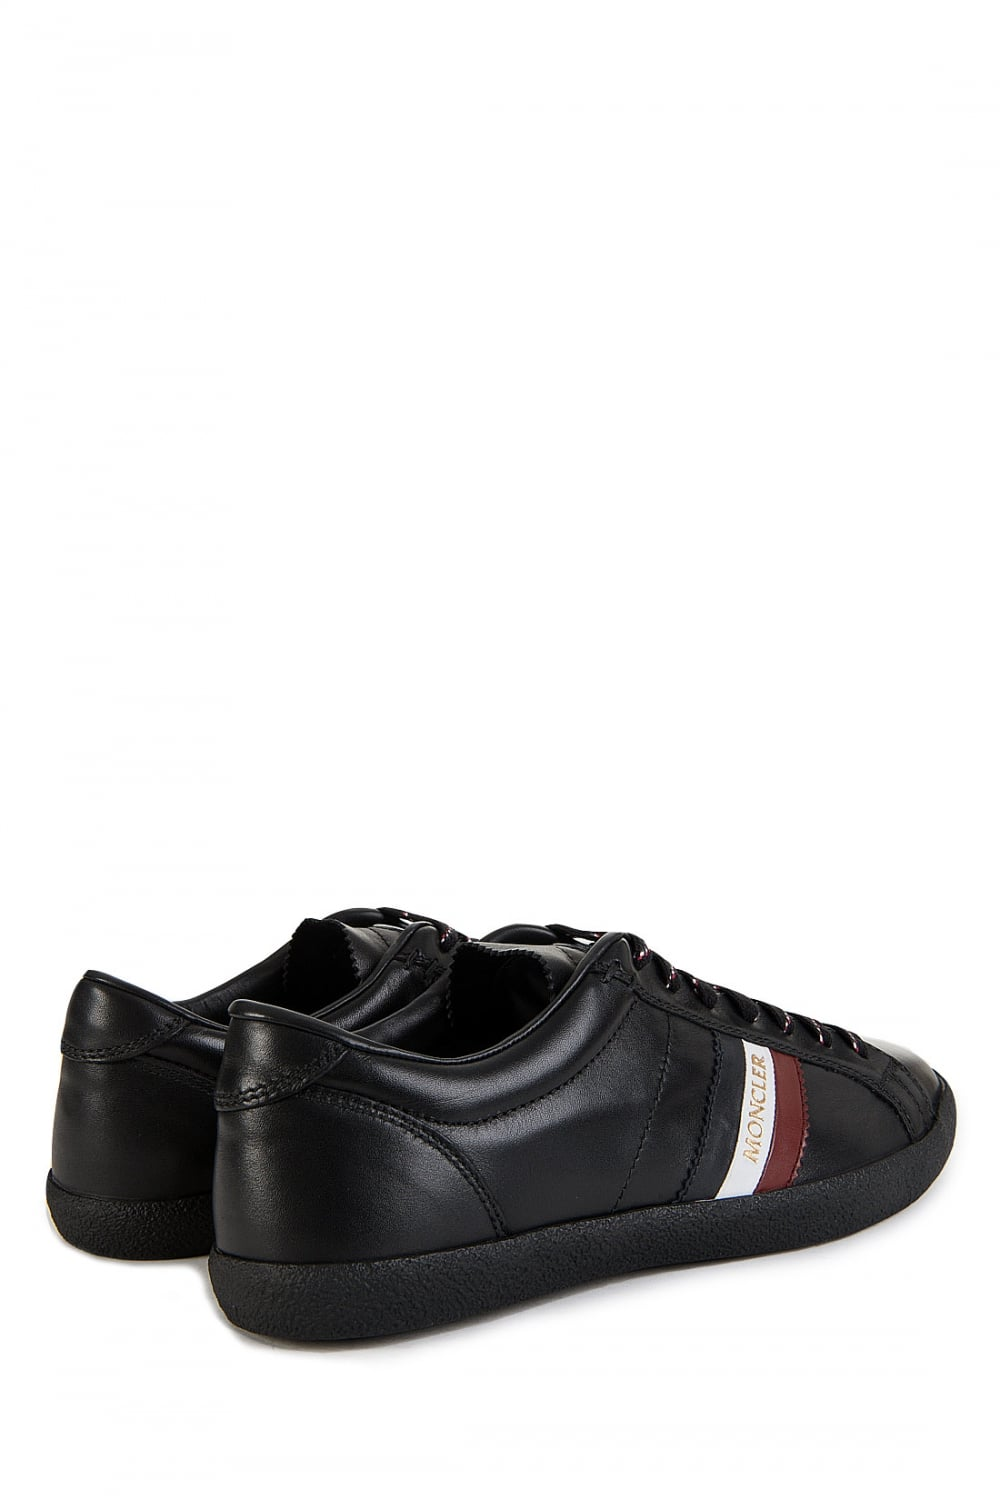 moncler trainers black